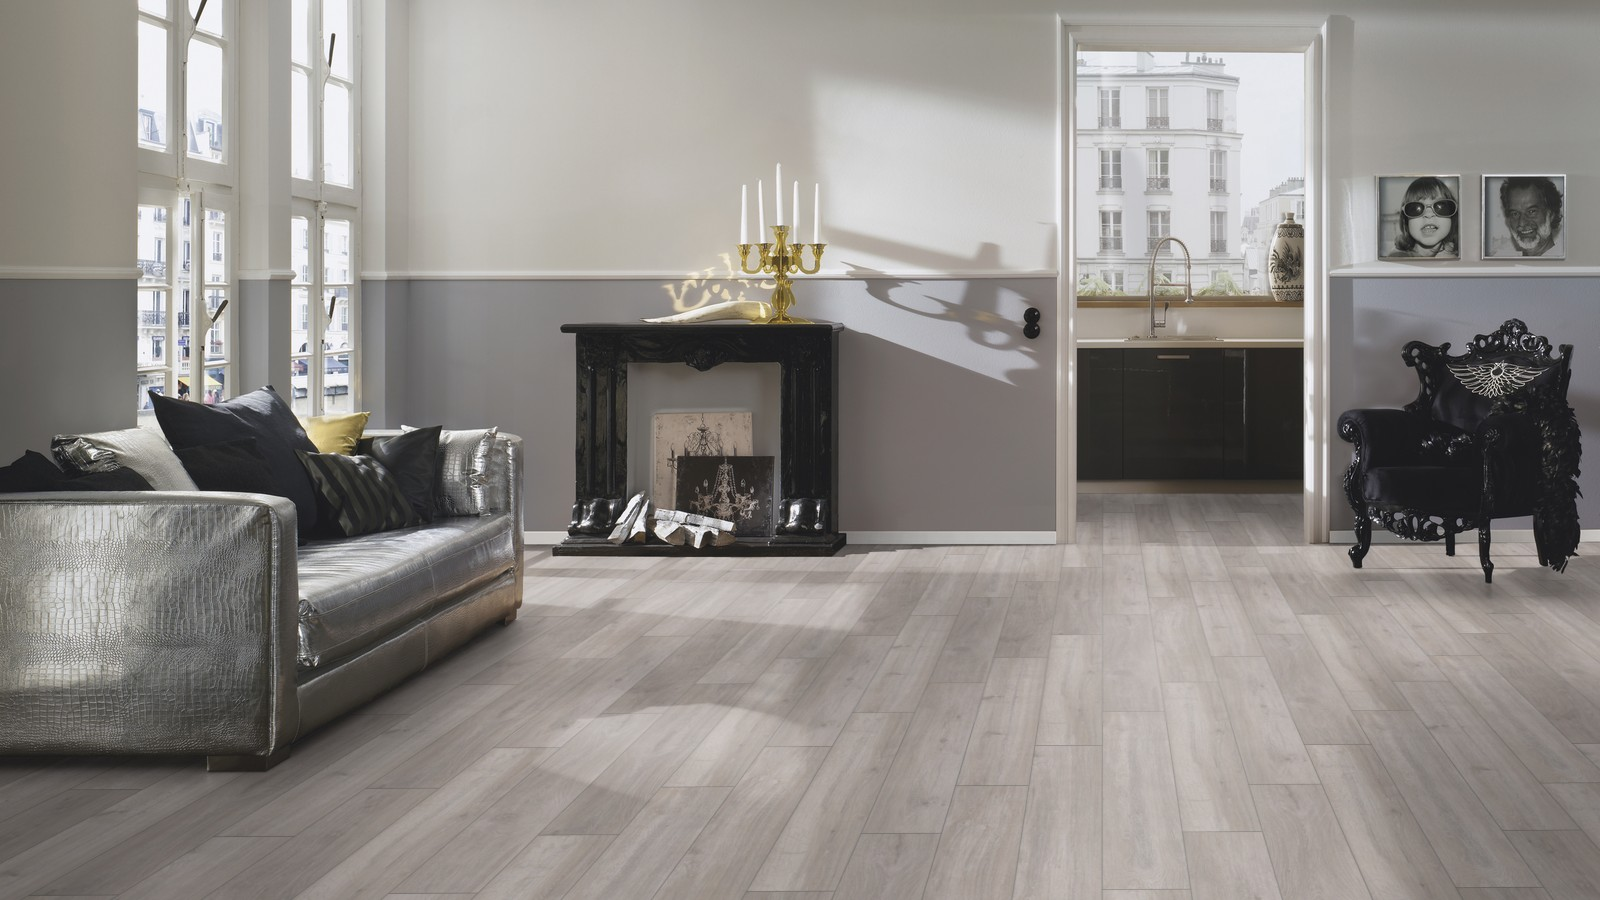 Laminate Flooring London Buy Laminate Wood Floors In Best Price